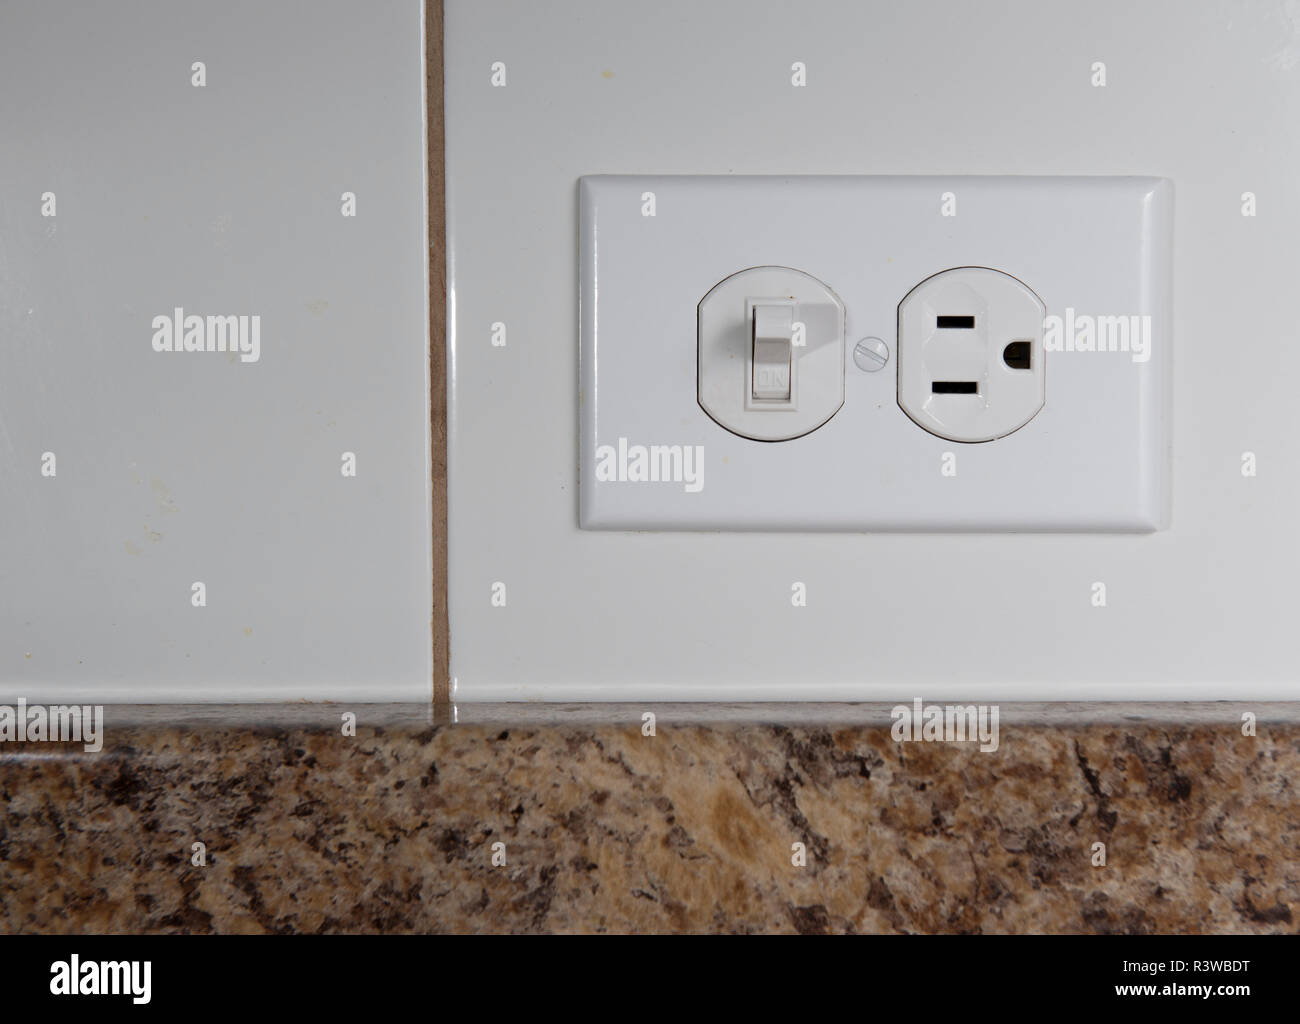 Electric Switch Gear Stock Photos Residential Wiring Light 110v Power Device To Turn On And Off Lights At